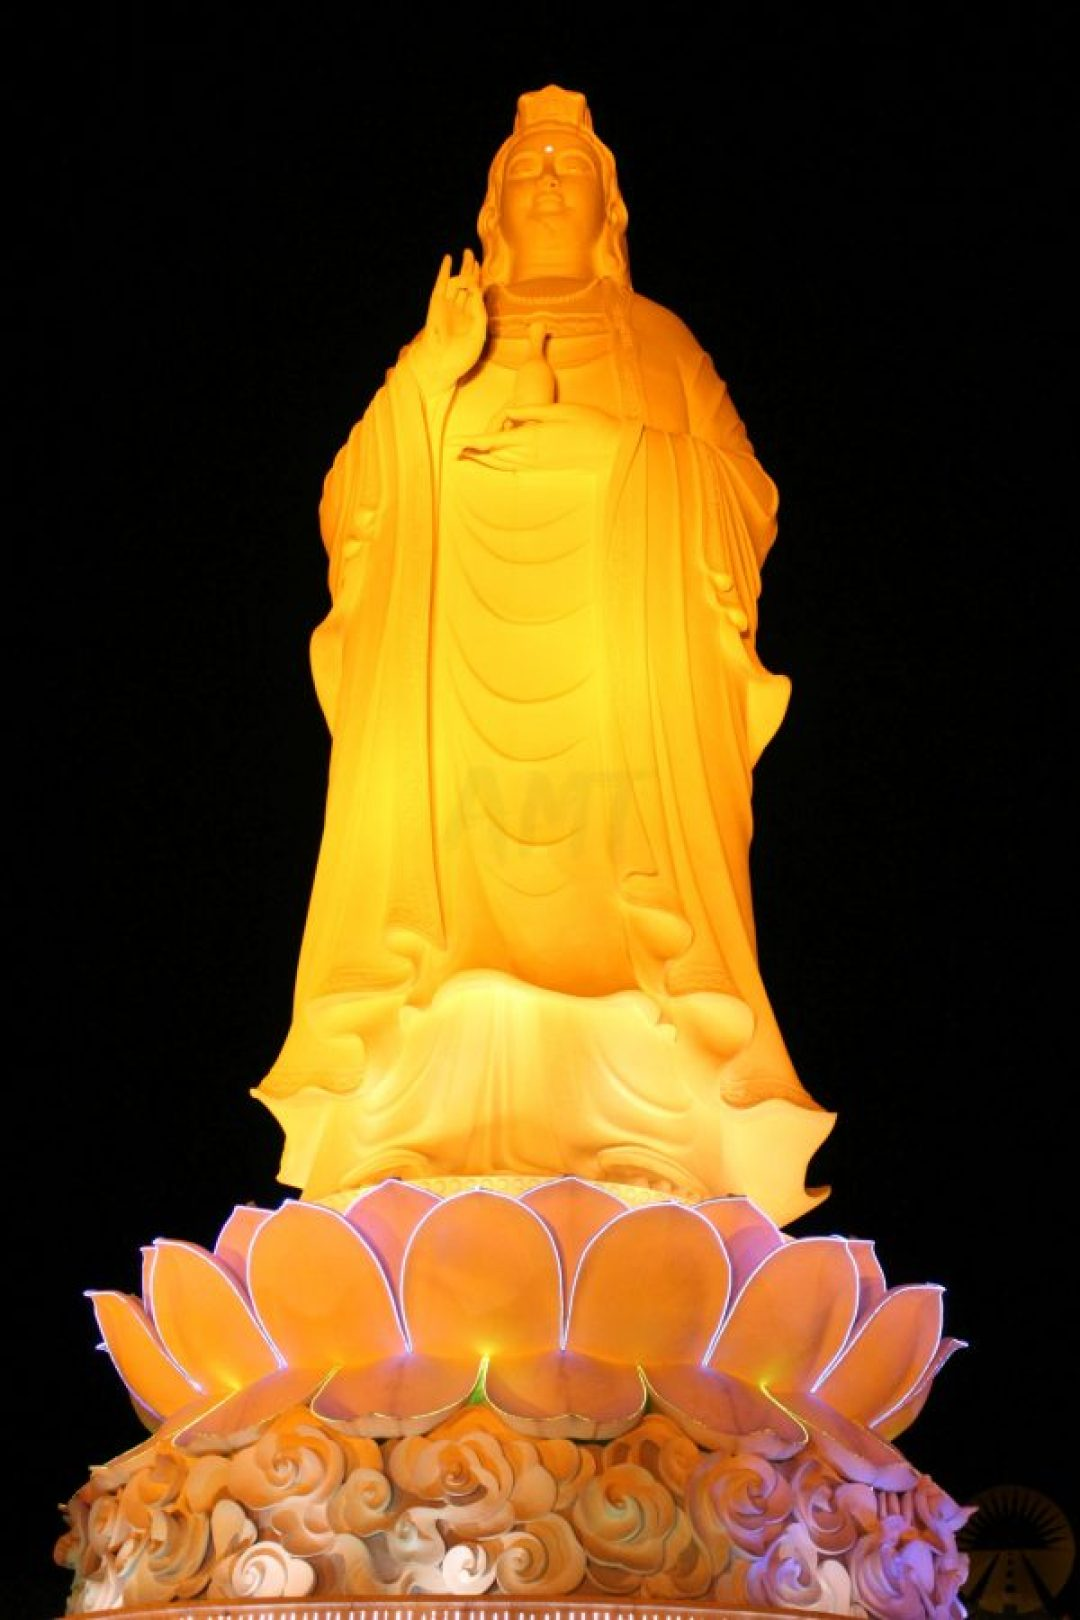 Lady Buddha at night